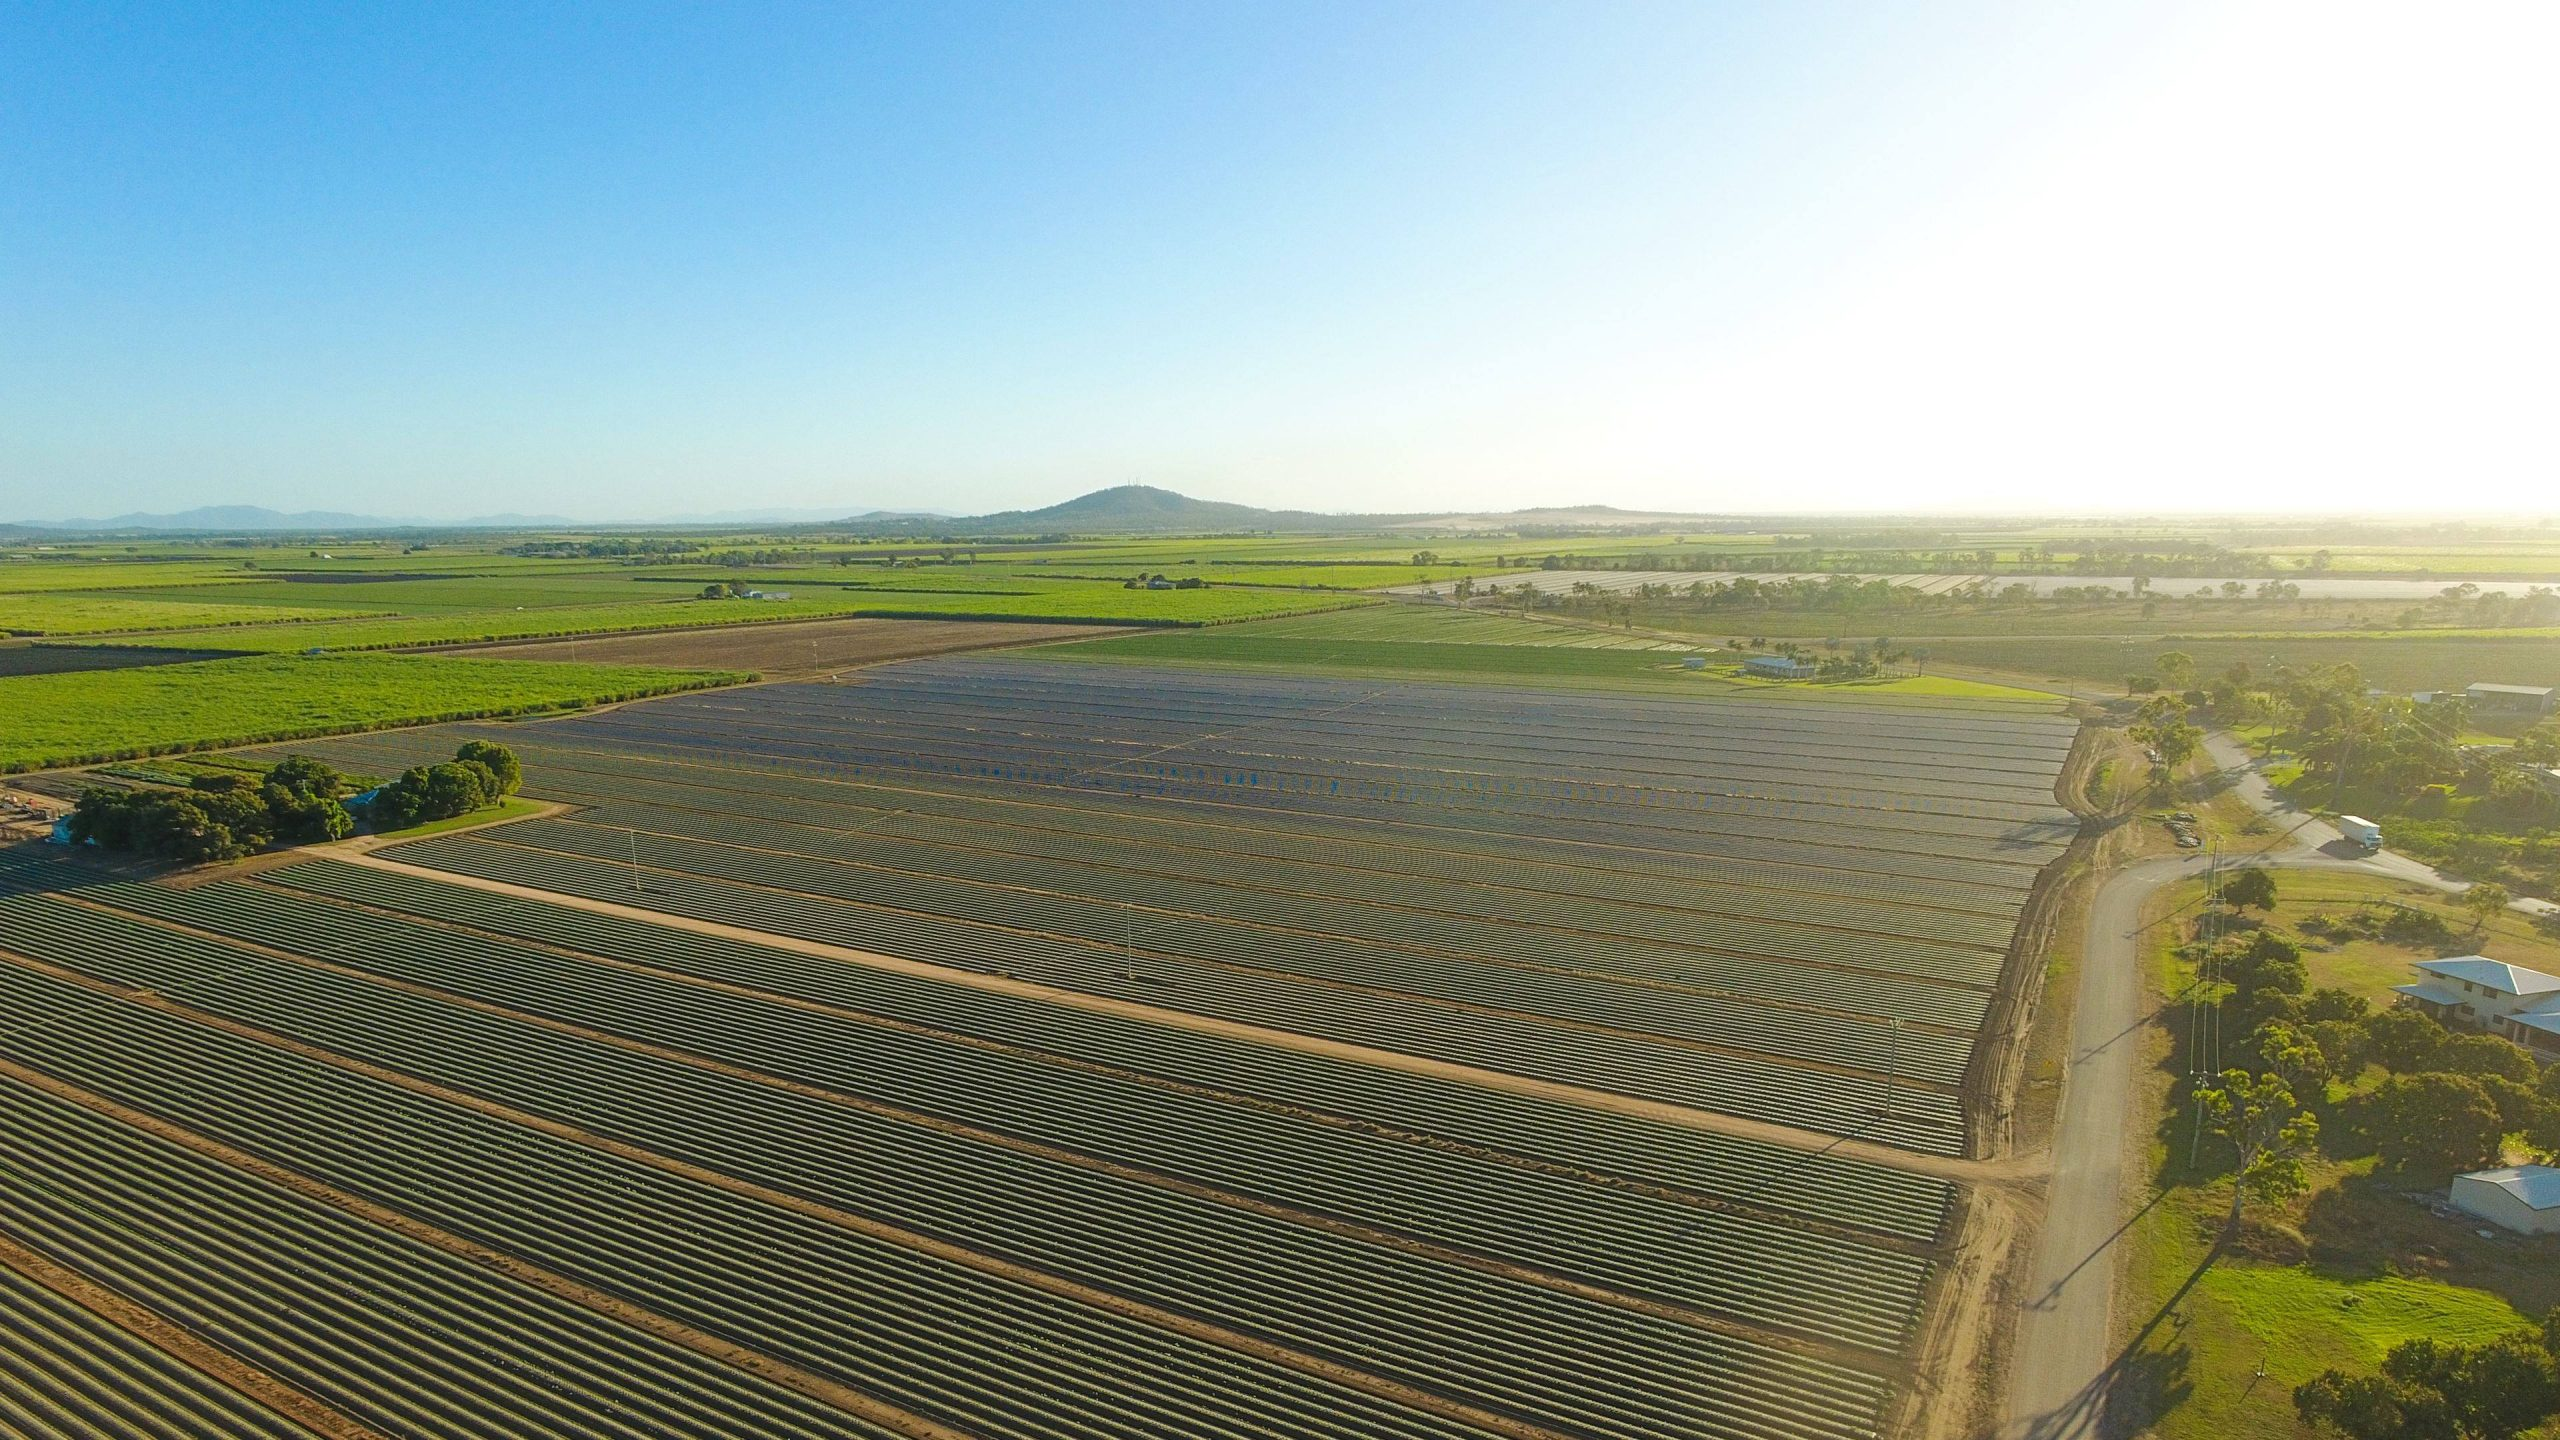 HTMC-Aerial Farming Landscape with Hills and Horizon